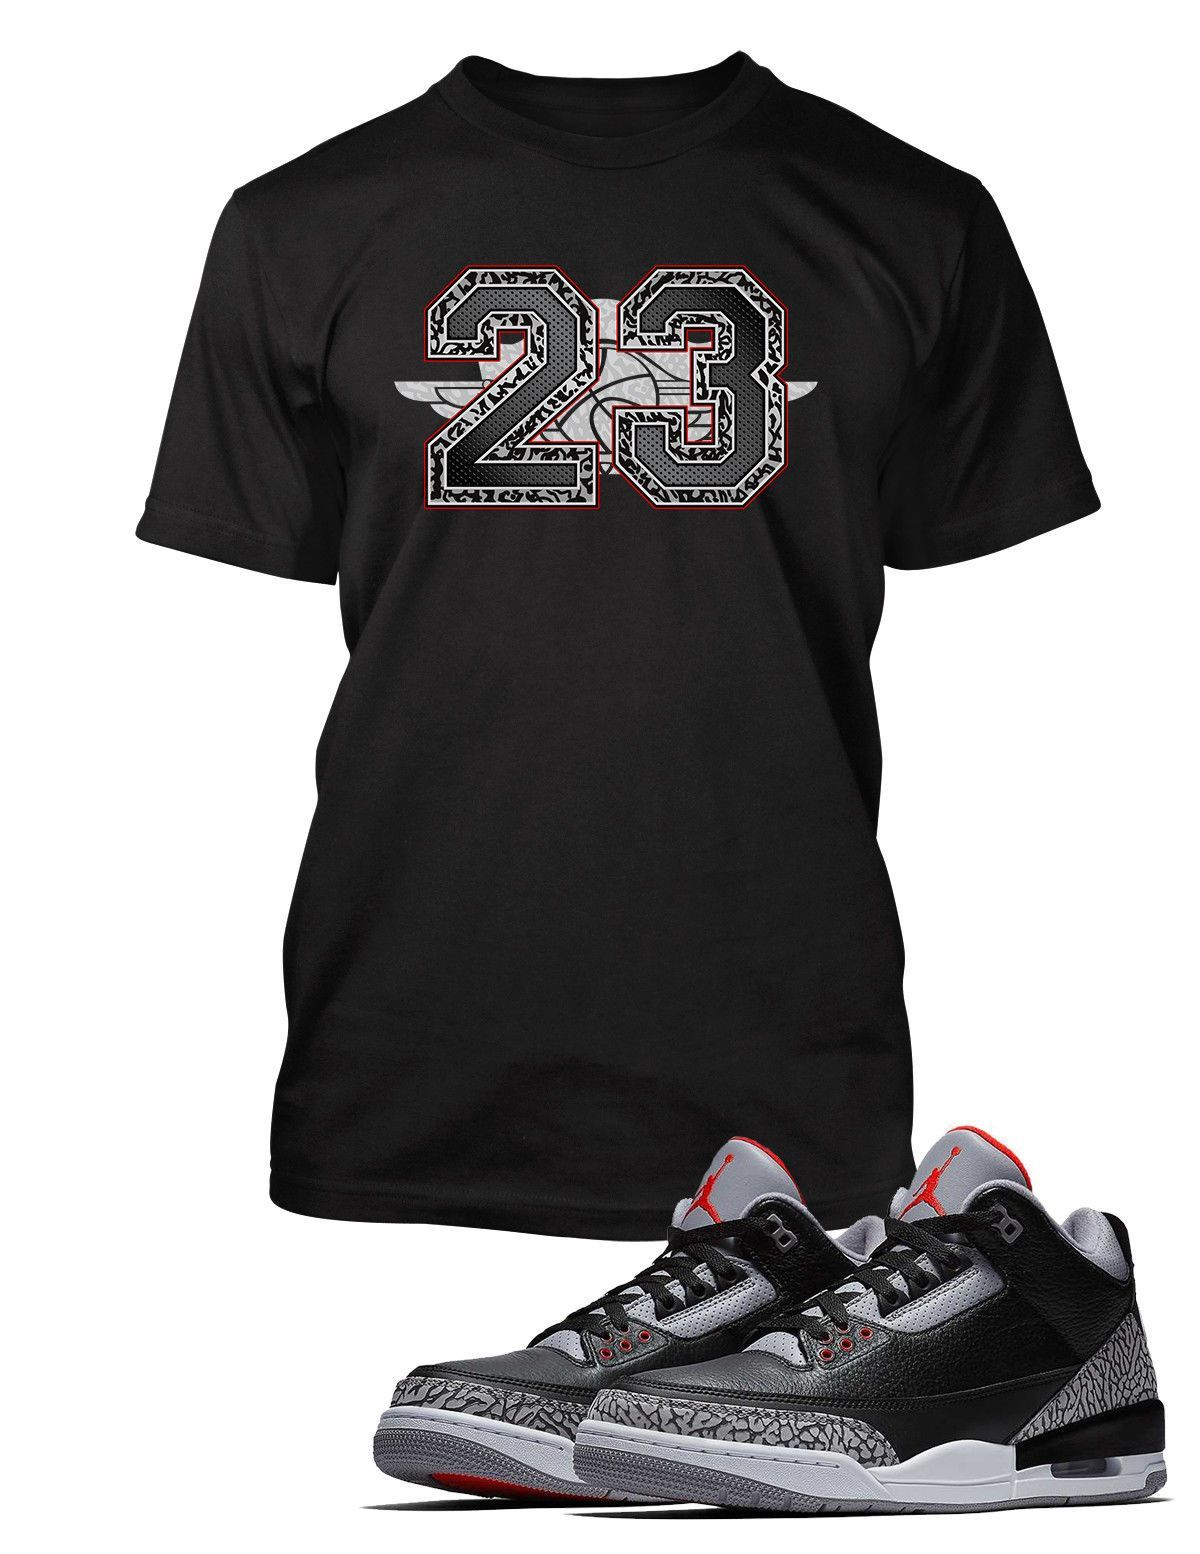 a6aee577bf48 T Shirt To Match Retro Air Jordan 3 Black Cement Shoe Custom Mens Tee Design  Sizing S M L XL XL-Tall 2XL 2XL-Tall 3XL 3XL-Tall LENGTH 28